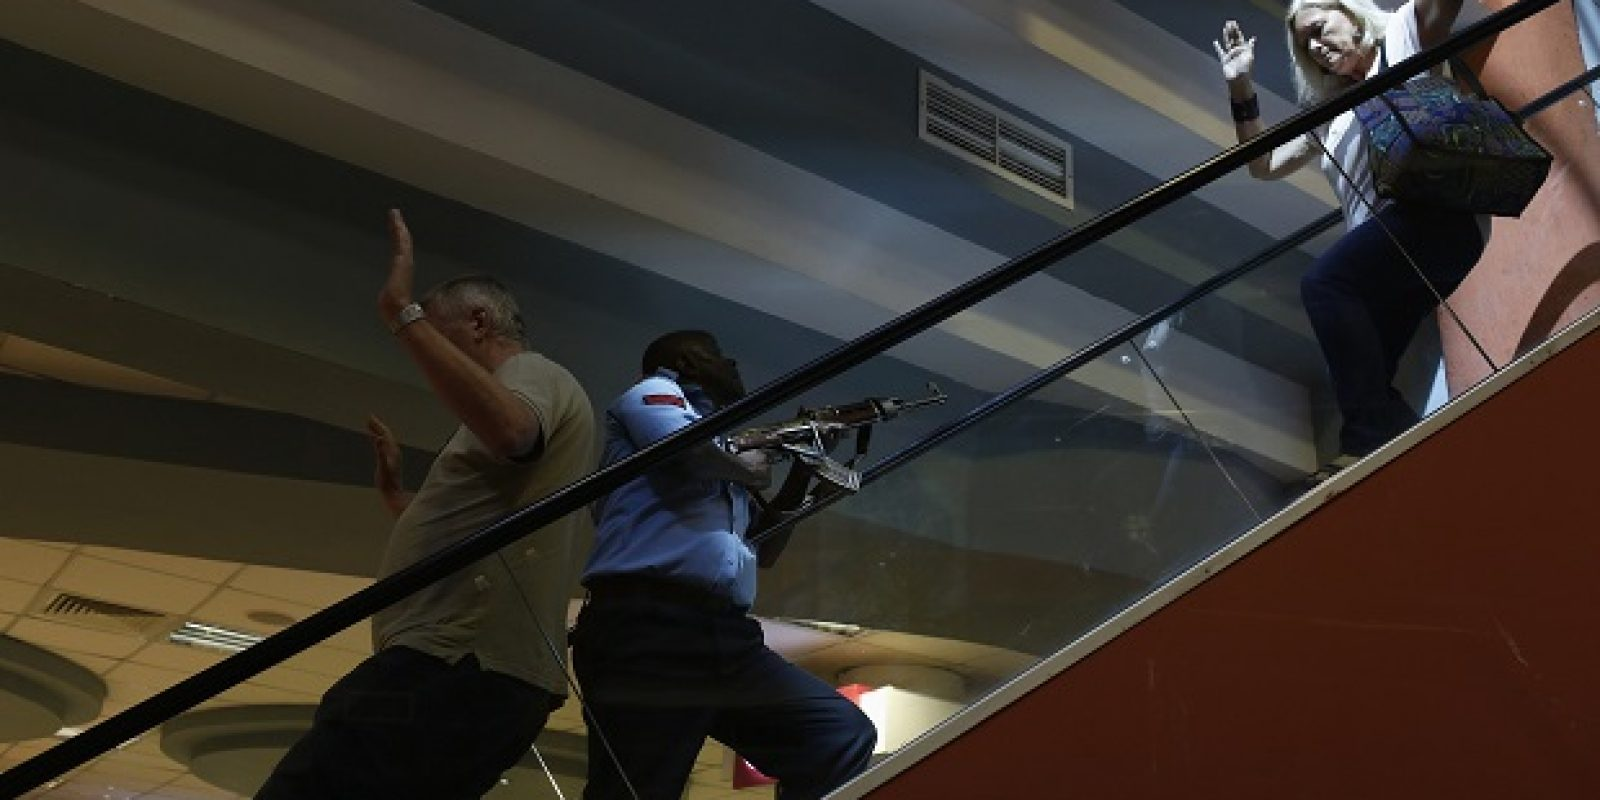 A police officer secures an area as civilians flee inside Westgate Shopping Centre in Nairobi. Imagen Por: A police officer (C) secures an area as civilians flee inside Westgate Shopping Centre in Nairobi September 21, 2013. Gunmen stormed the shopping mall in Nairobi on Saturday killing at least 20 people in what Kenya